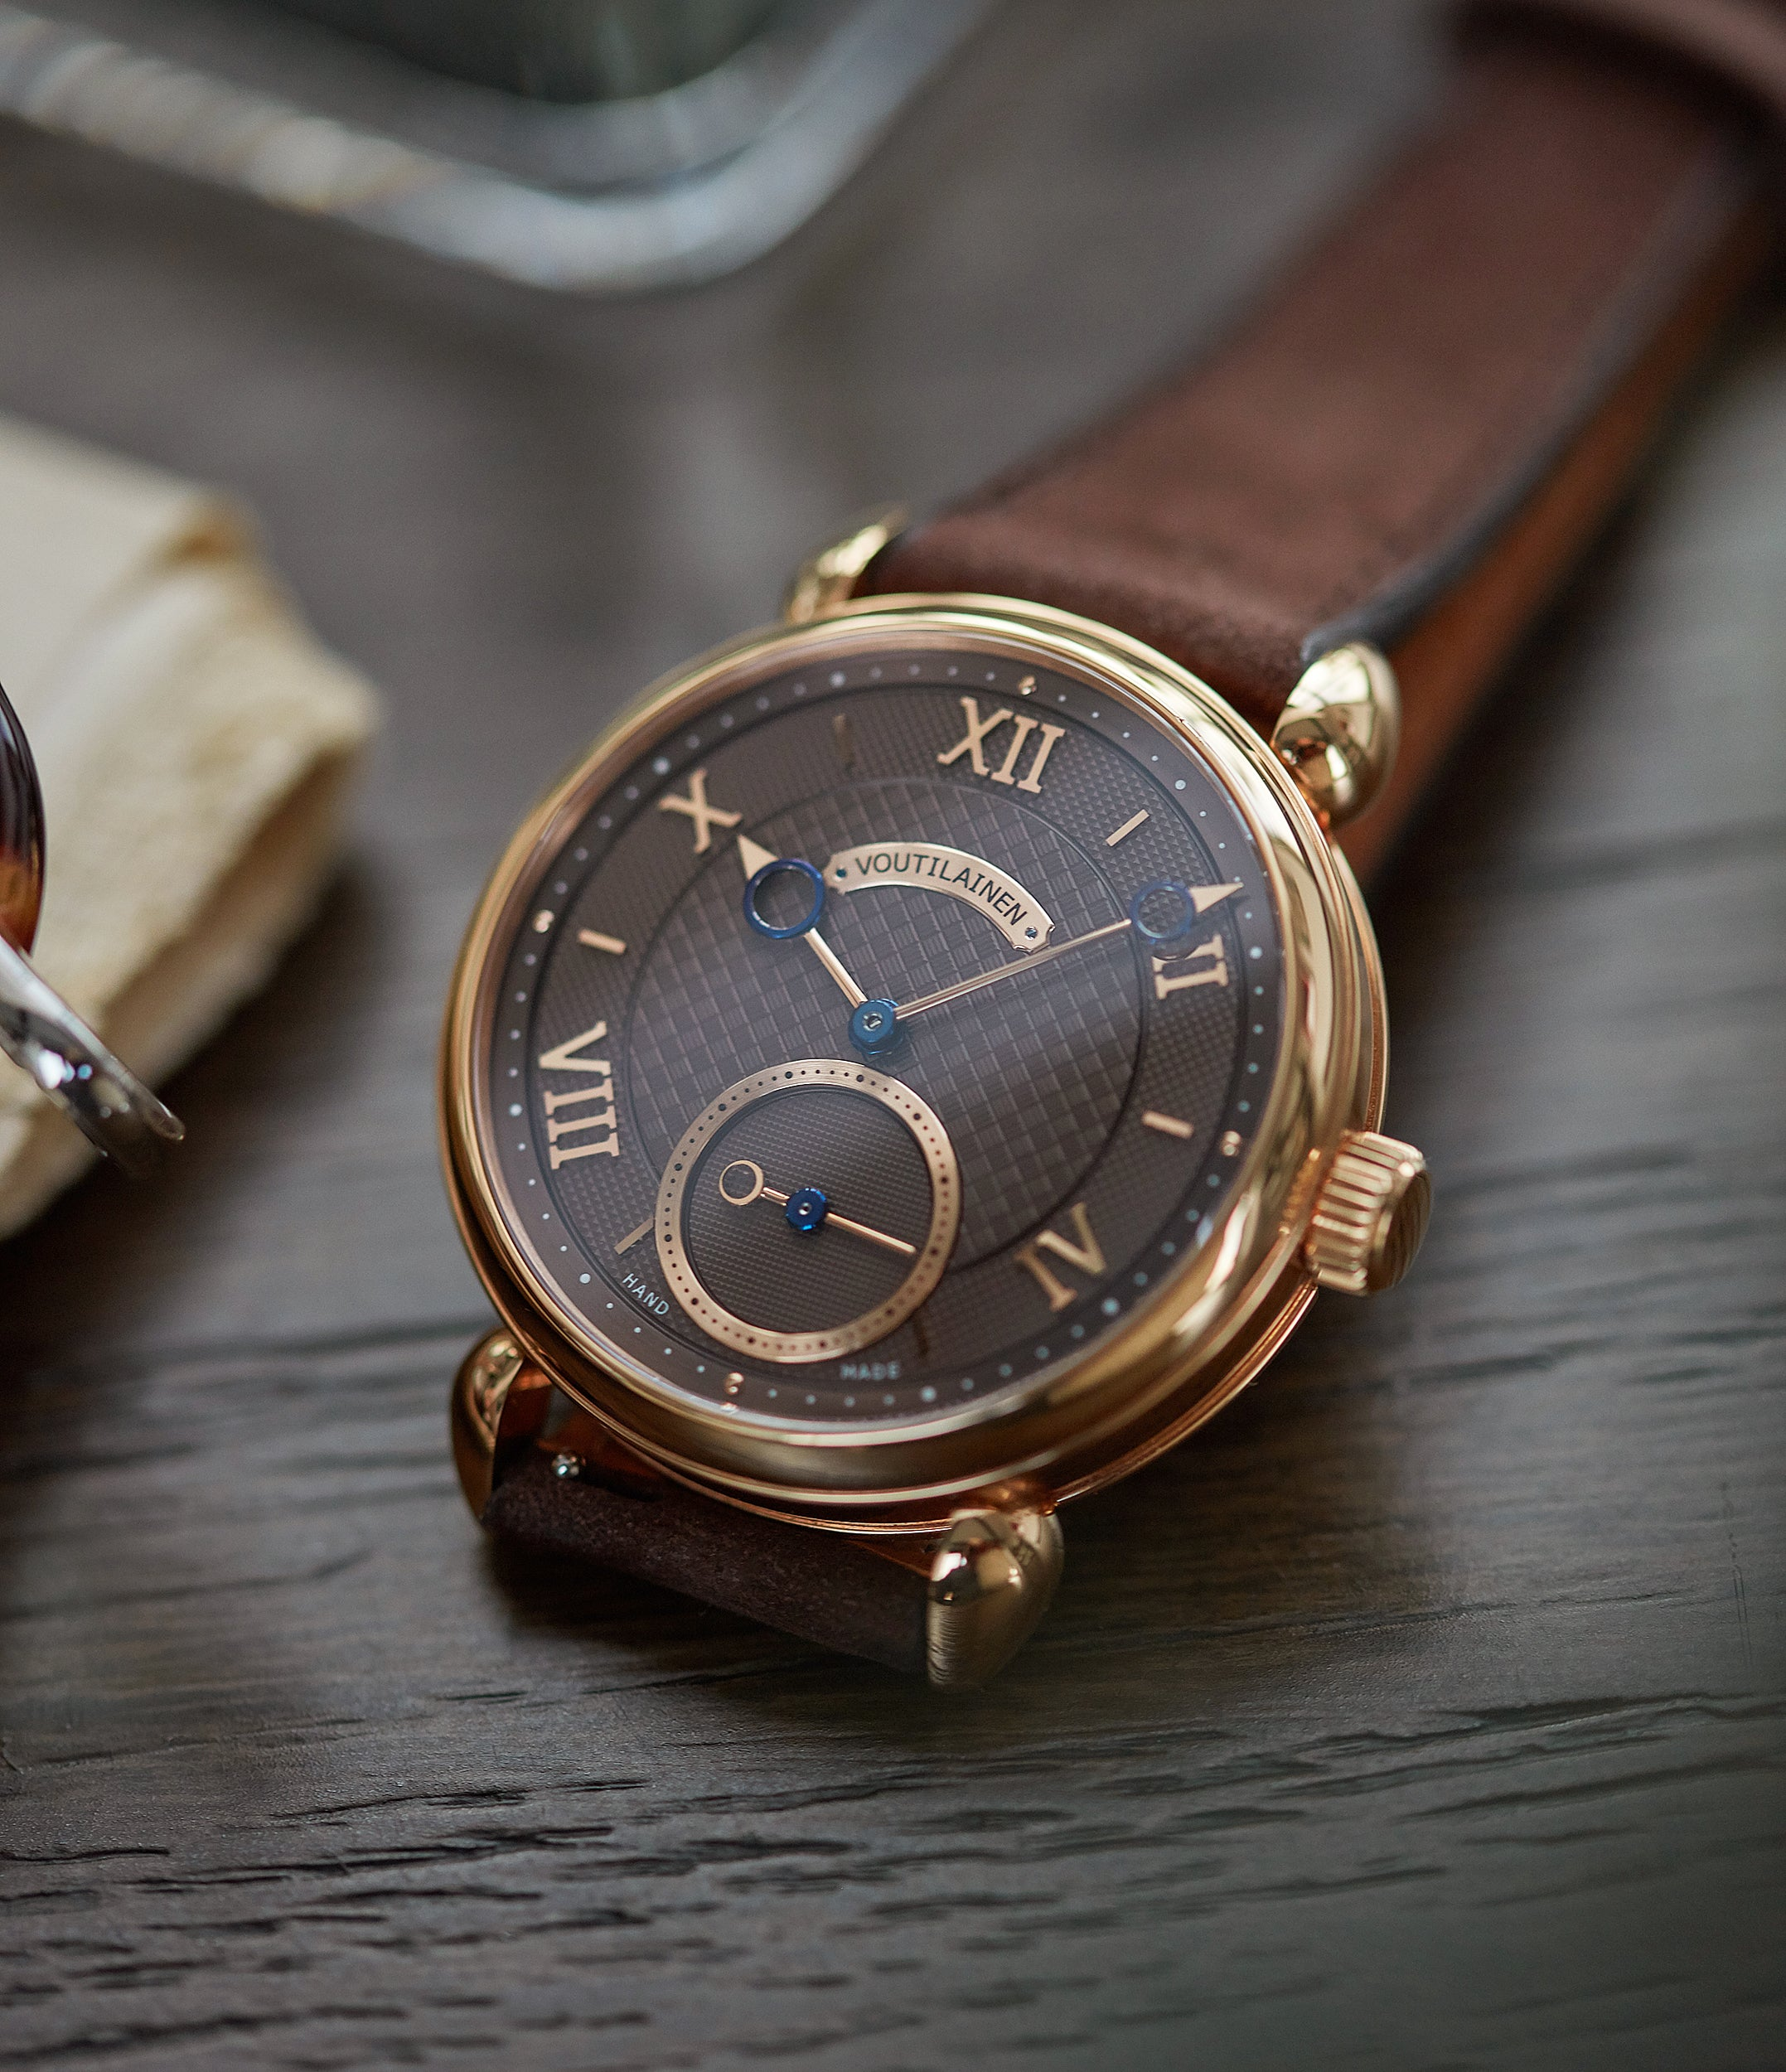 sell Voutilainen Vingt-8 Cal. 28 rose gold dress watch with brown guilloche dial for sale at A Collected Man London approved re-seller of preowned Voutilainen watches